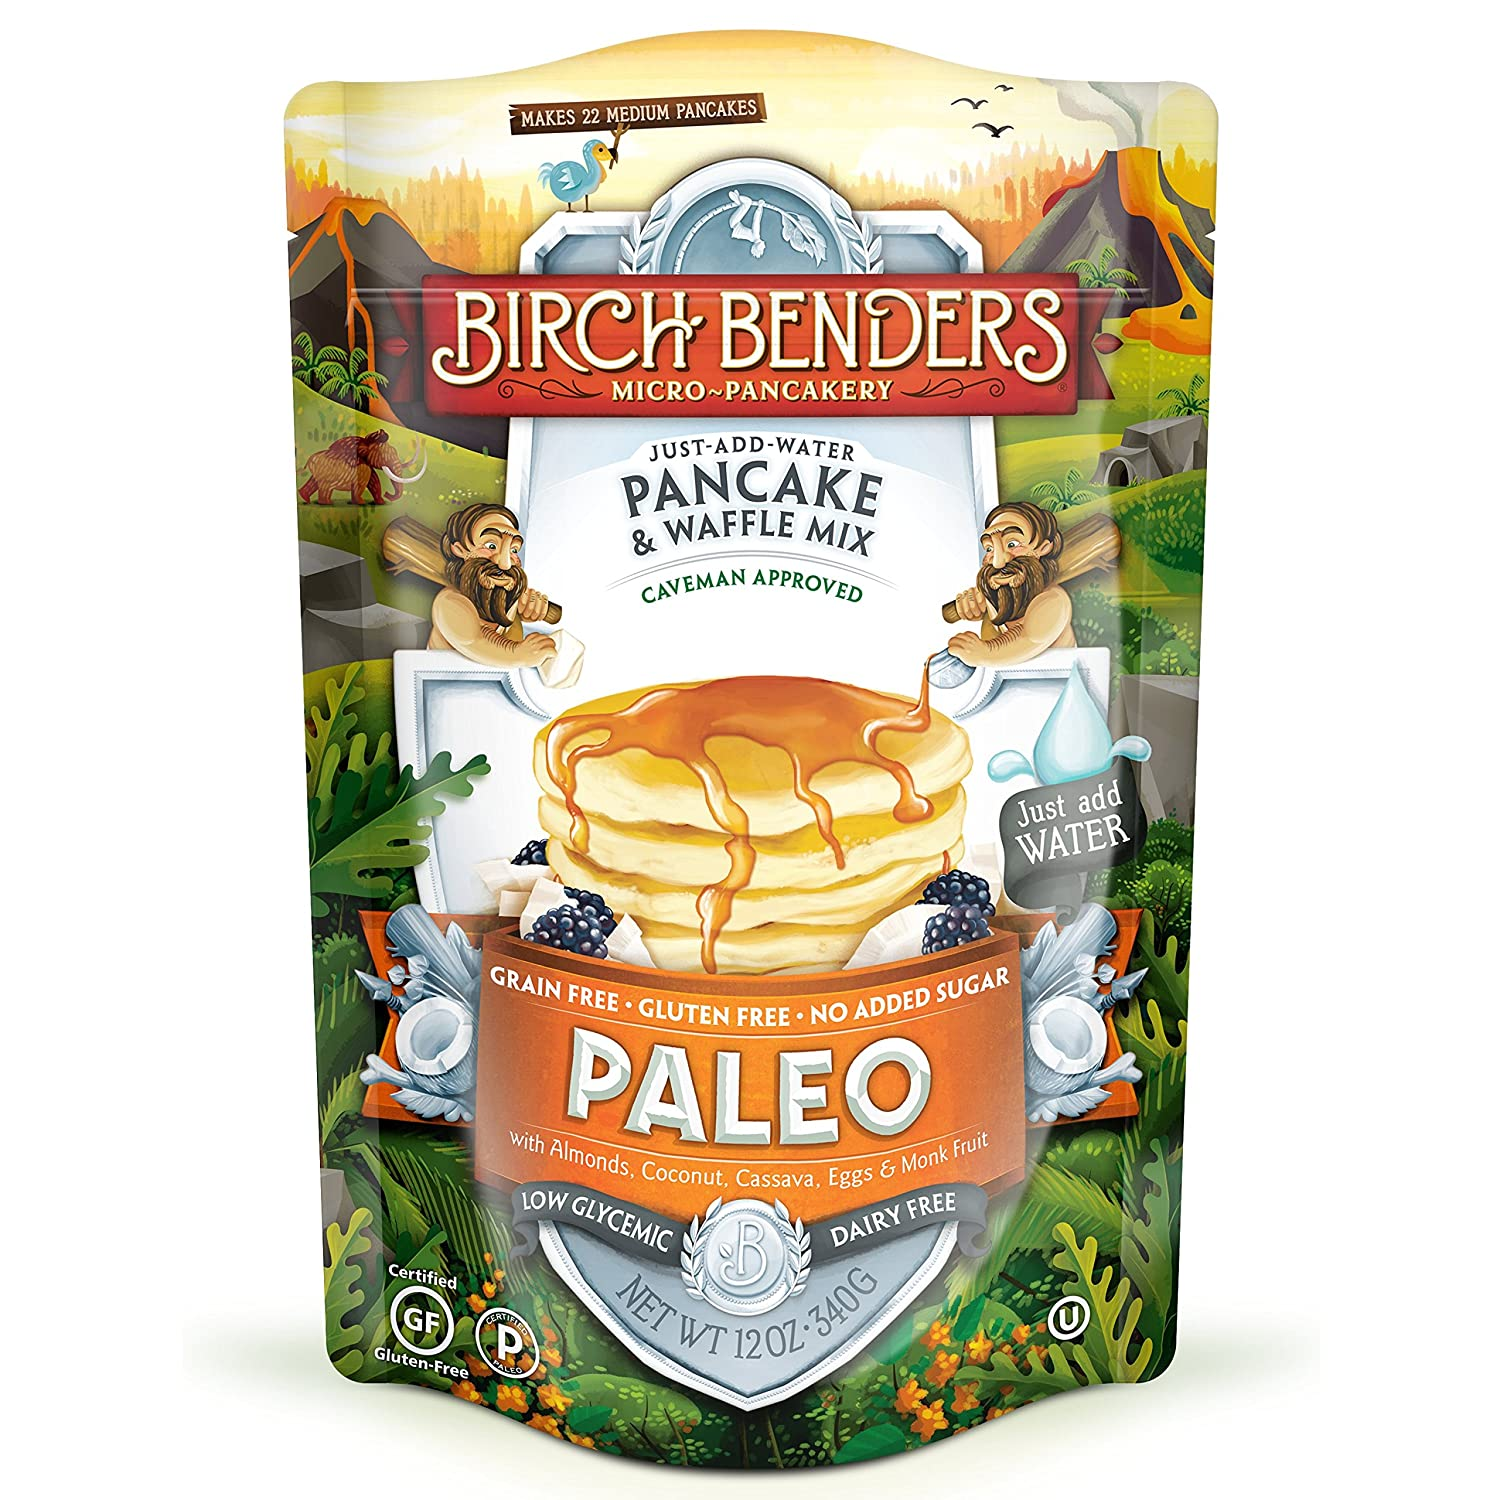 Paleo Pancake & Waffle Mix by Birch Benders, Low-Carb, High Protein, High Fiber, Gluten-free, Low Glycemic, Prebiotic, Keto-Friendly, Made with Cassava, Coconut & Almond Flour, 12 oz